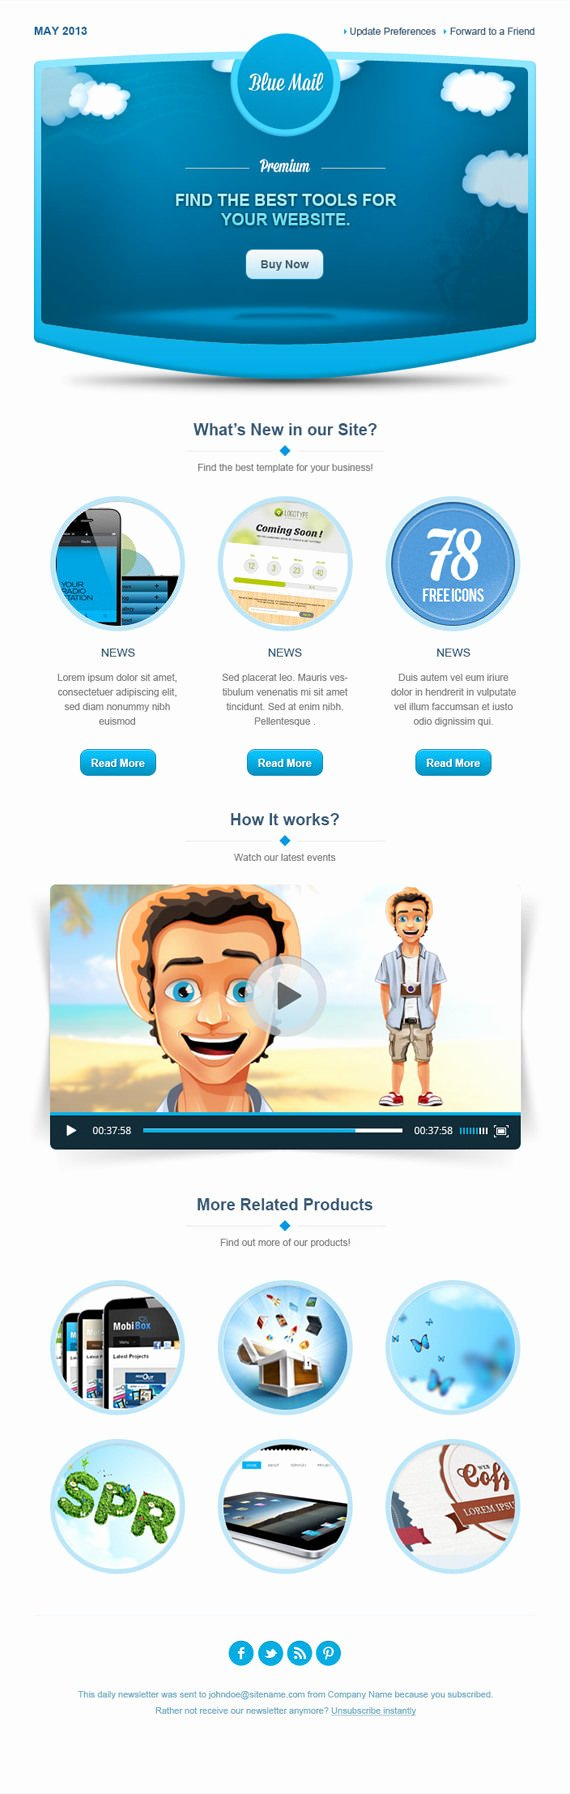 Free Email Template Psd Inspirational 25 HTML and Psd Email Newsletters Psd Vector Eps Jpg